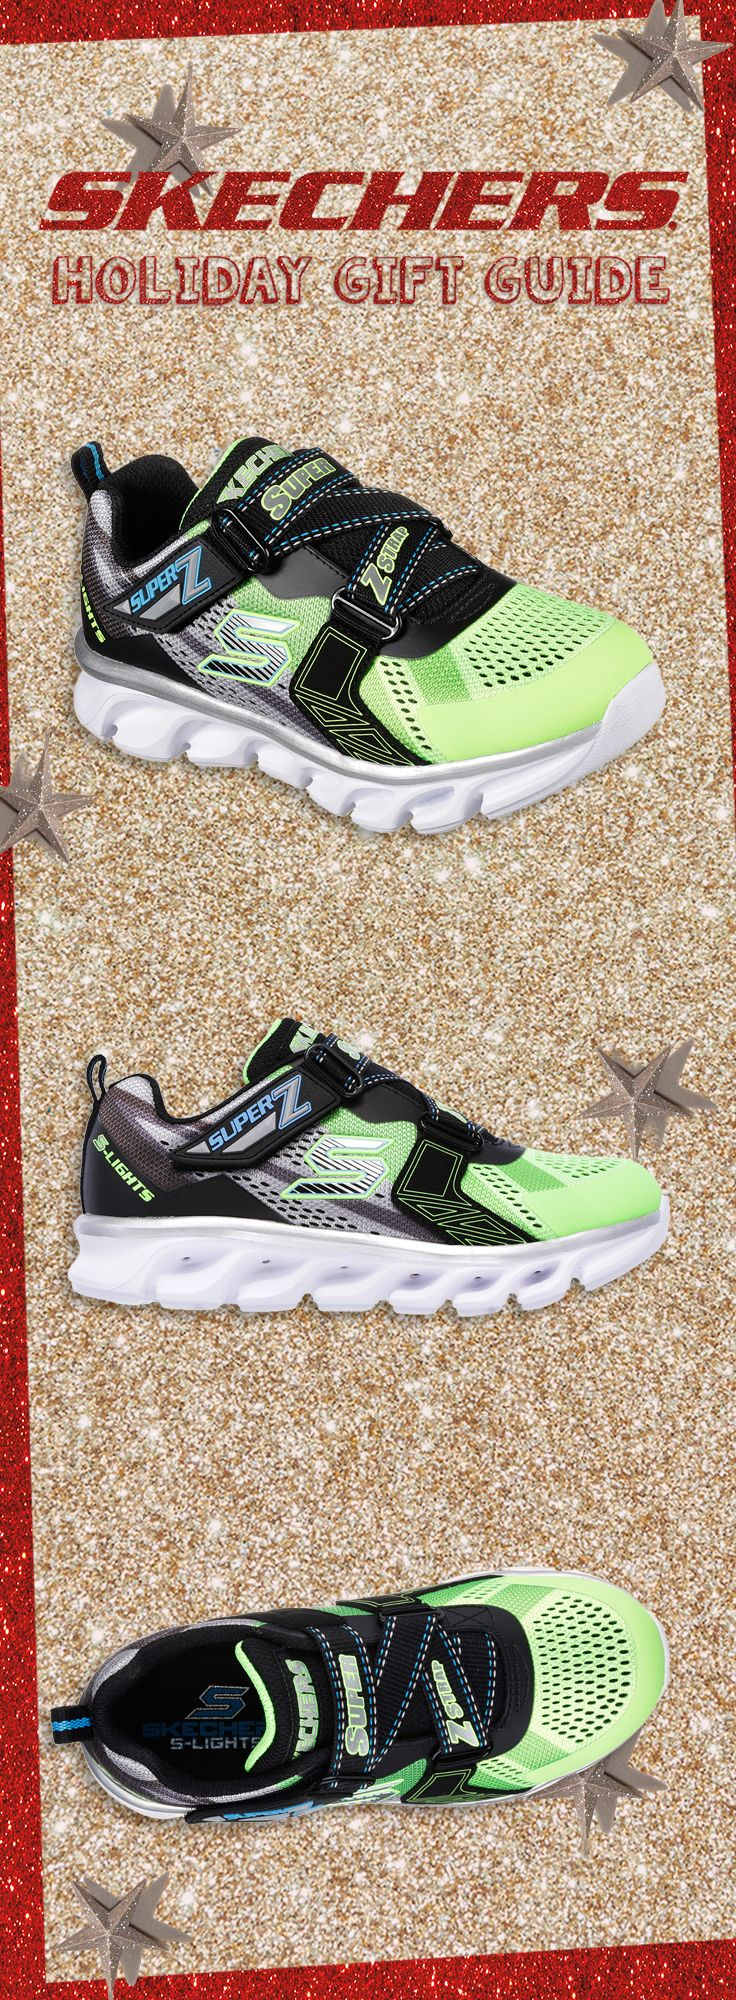 For the little super hero in your life… S Lights: Hypno-Flash! #SKECHERSkids